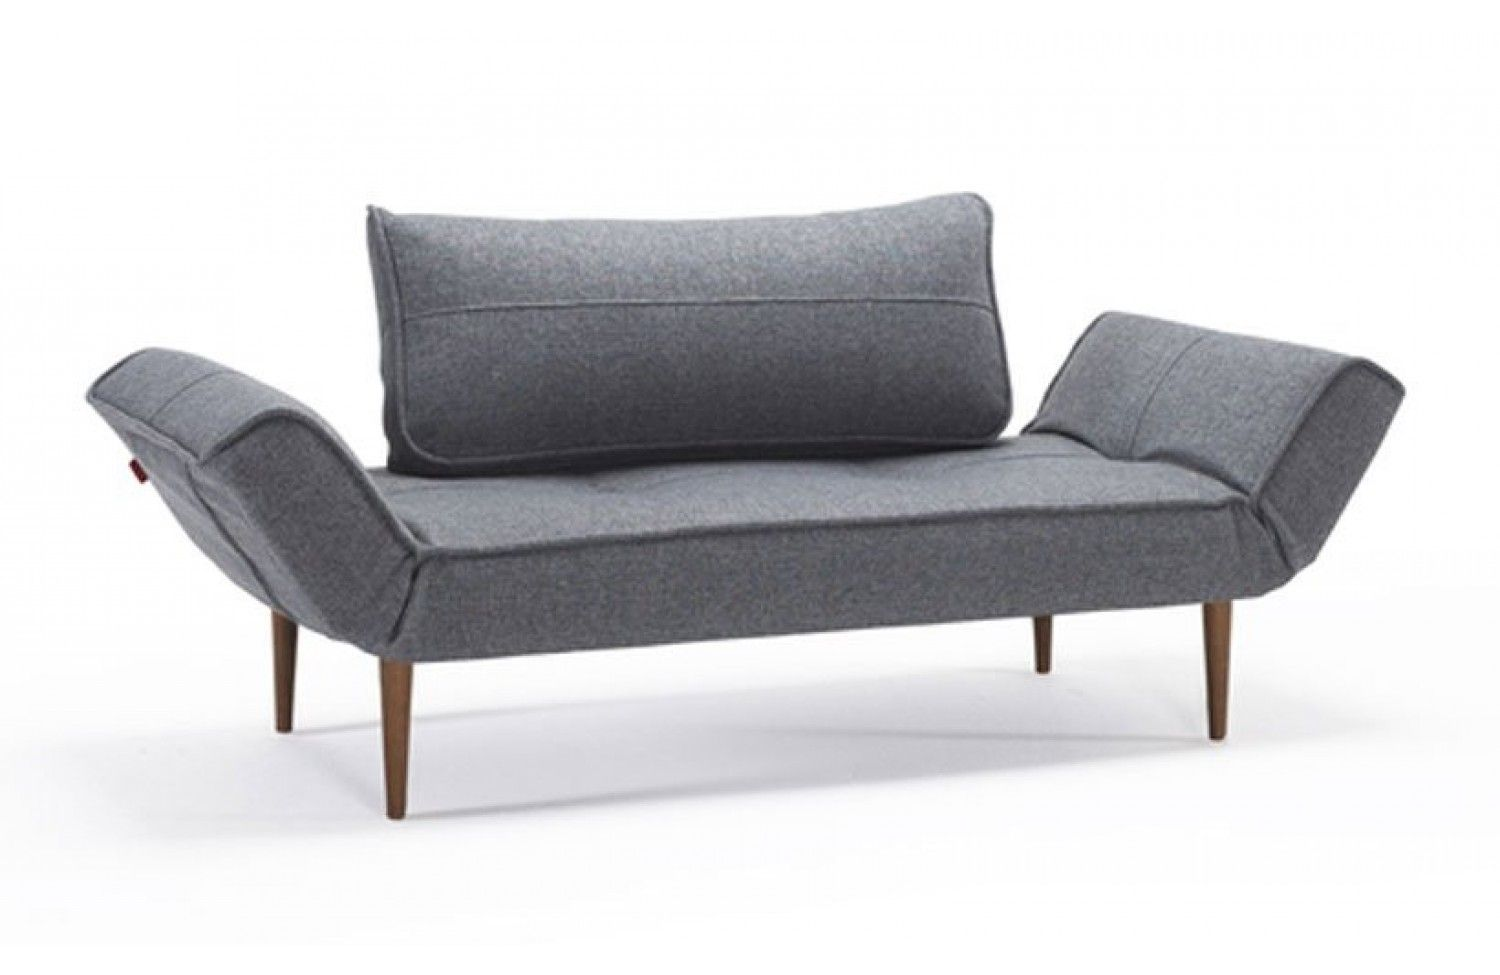 Zeal Canape Banquette Convertible 200 Cm Innovation Design